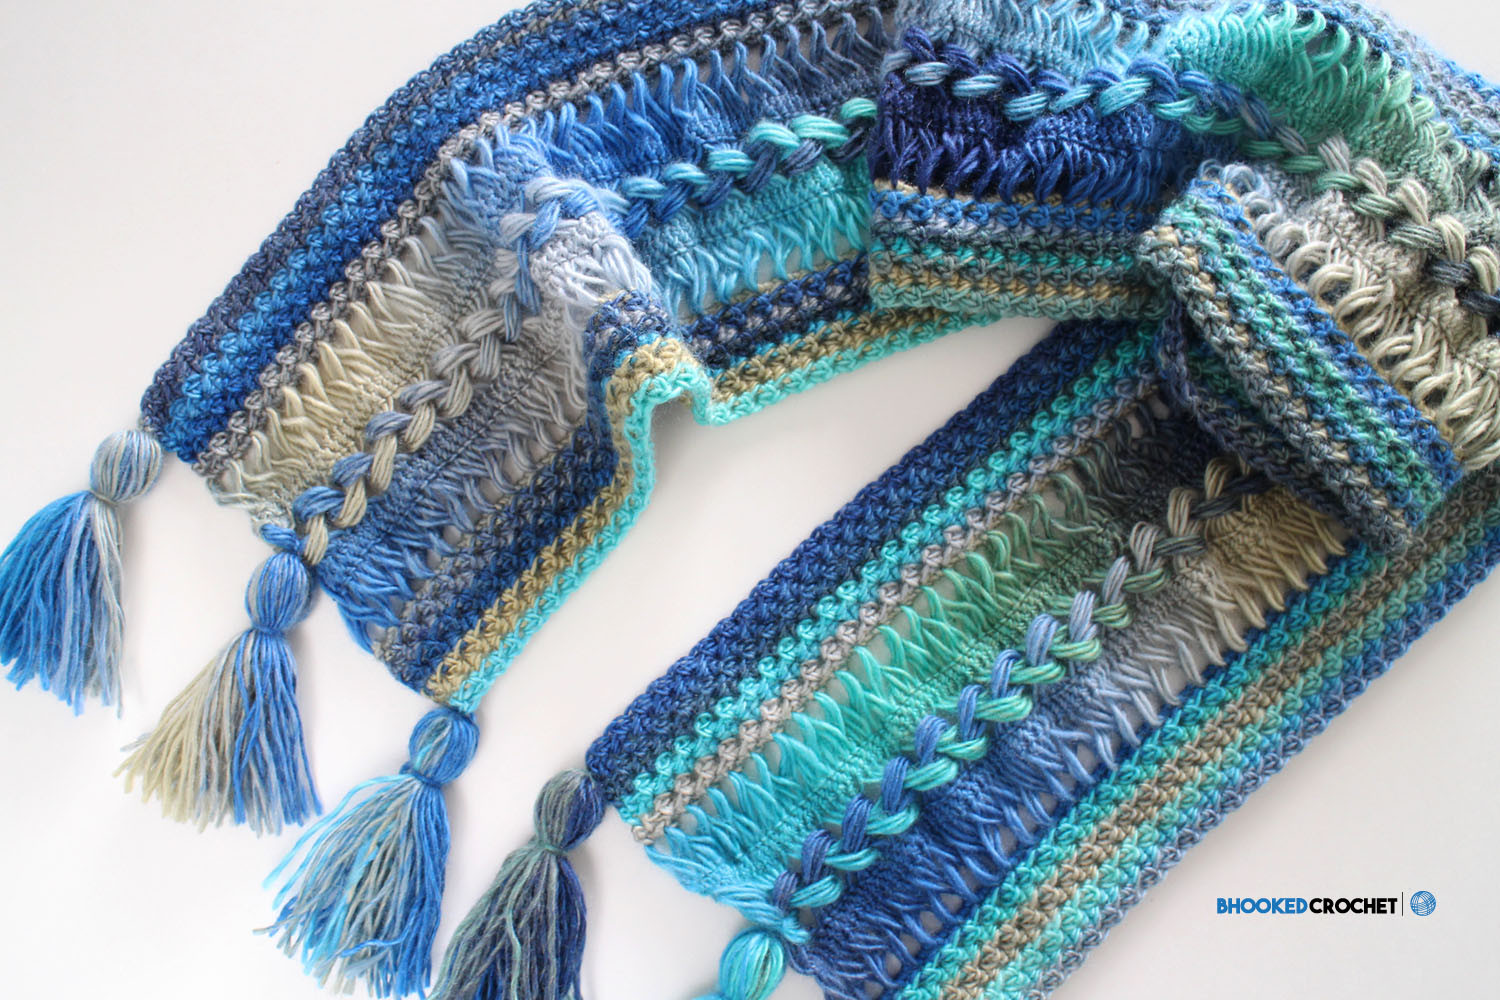 Waves Hairpin Lace Scarf B hooked Crochet